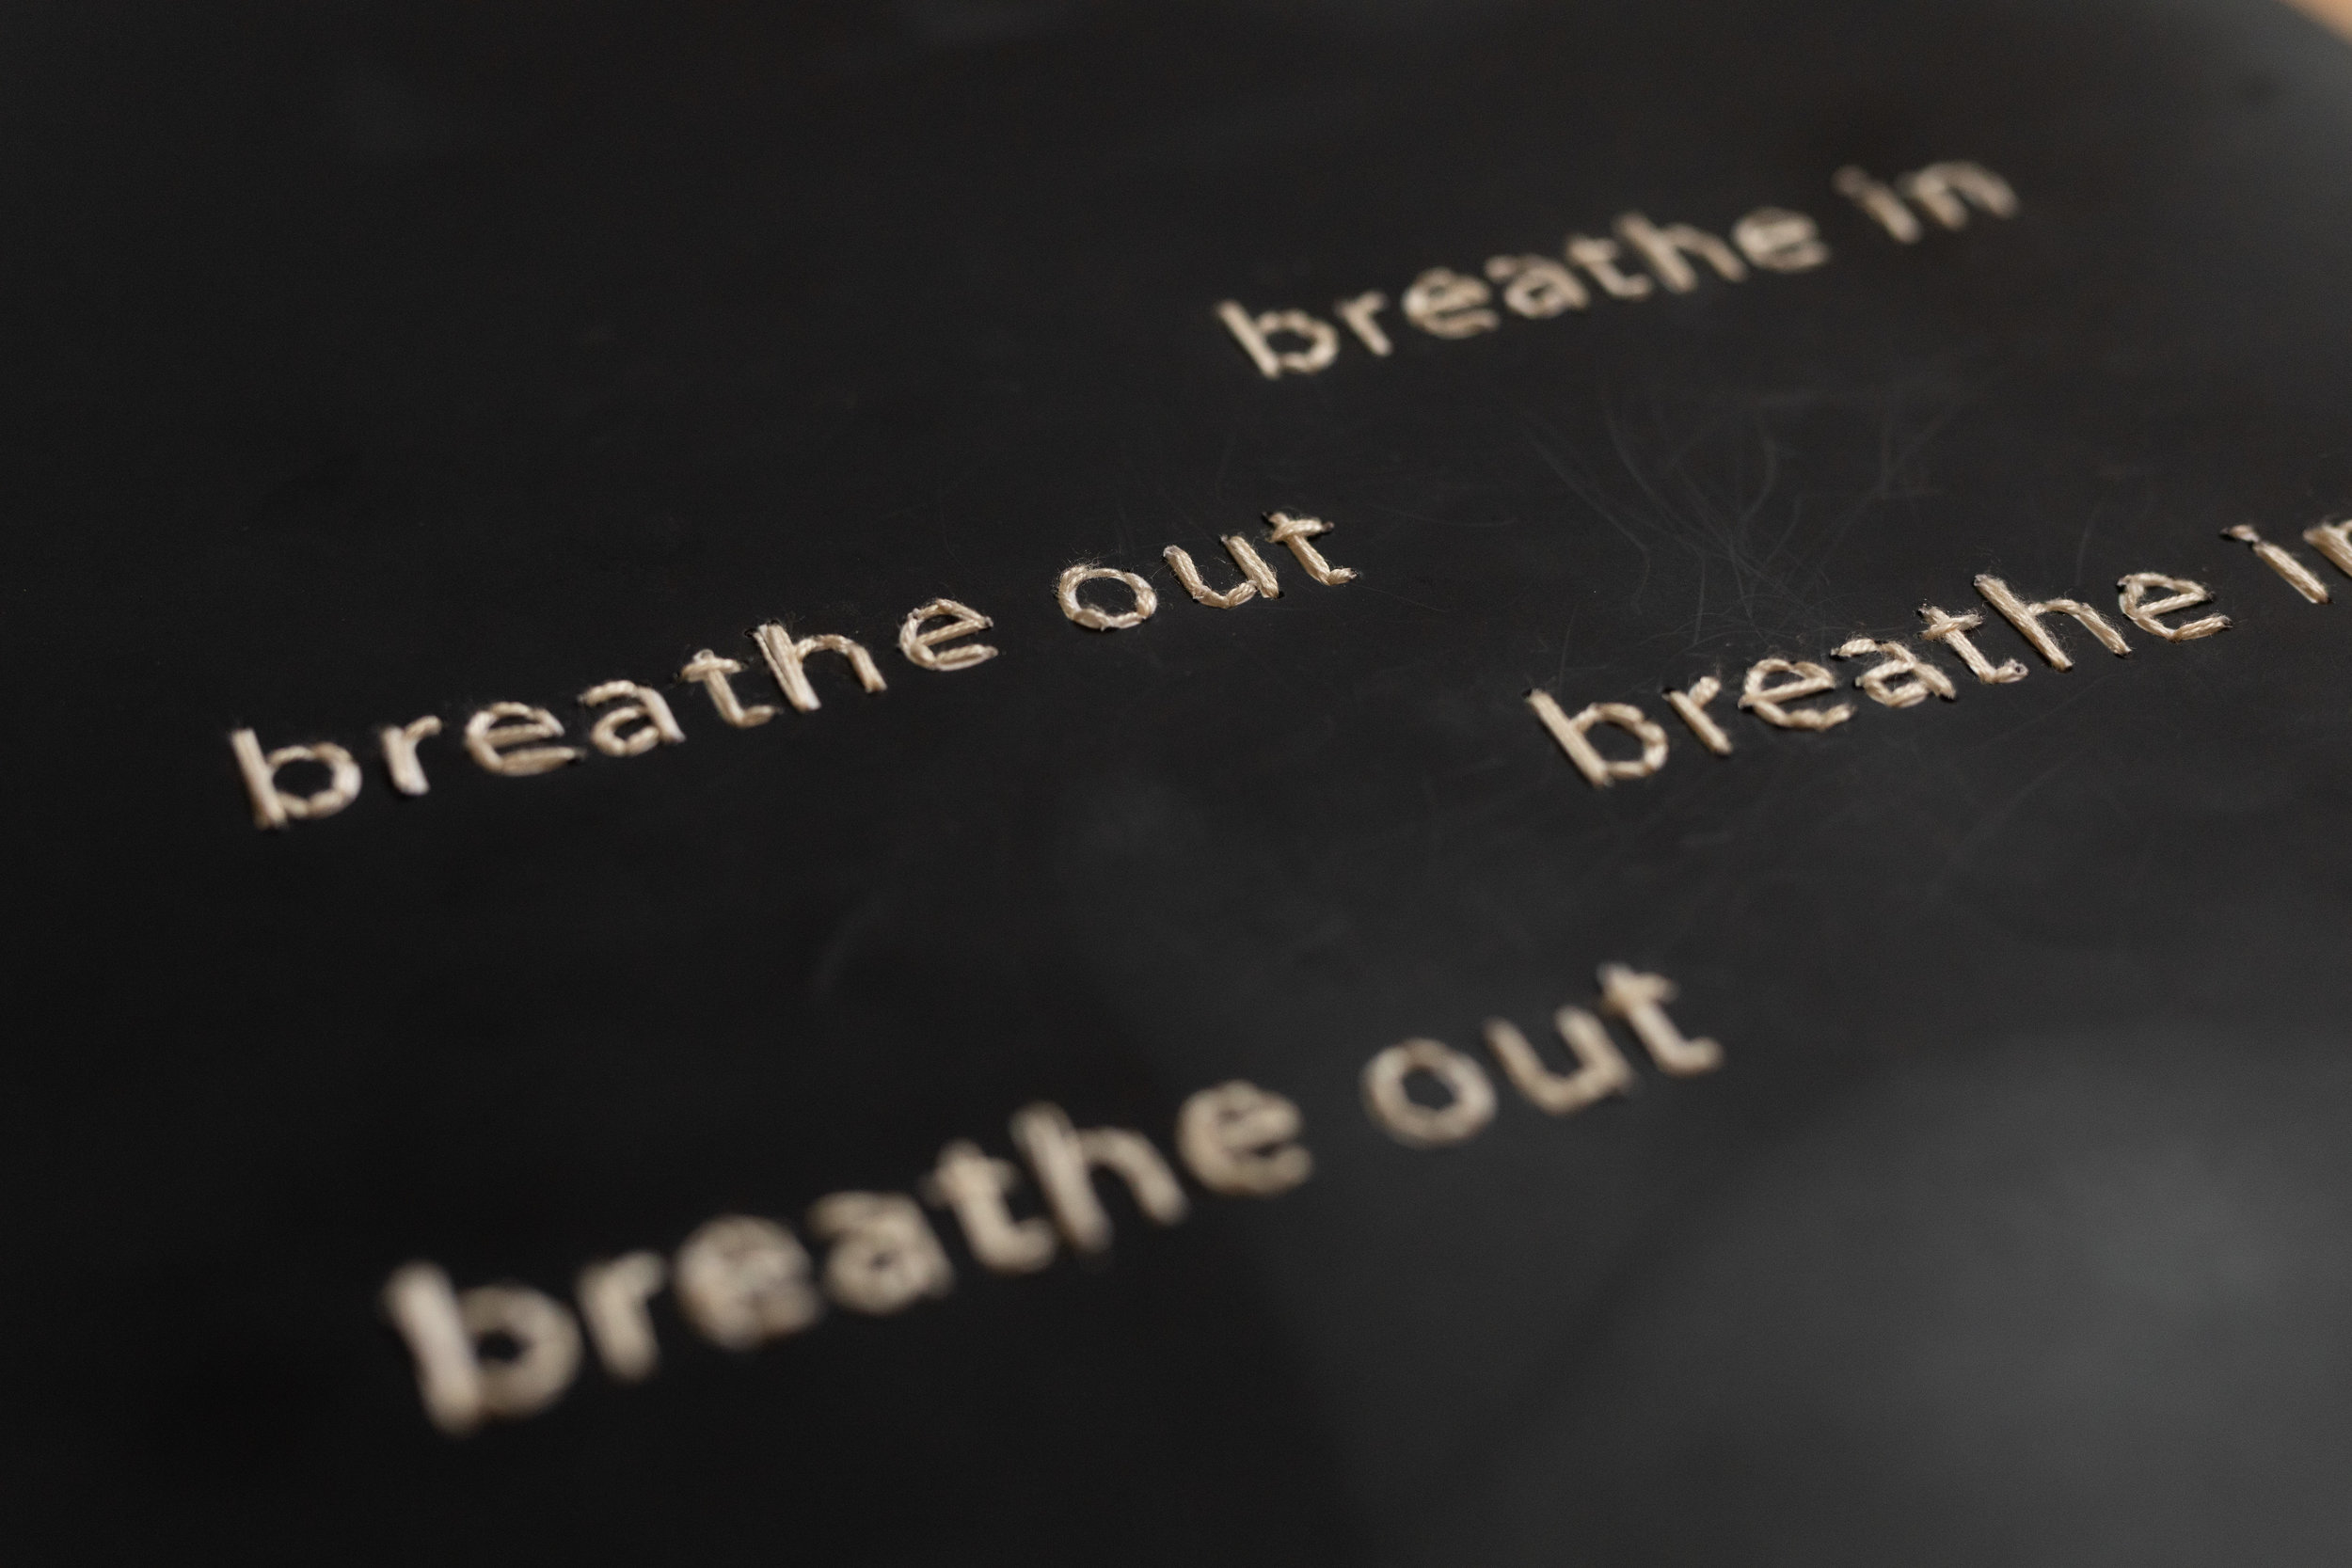 Detail of Breathe, embroidery on archival inkjet print